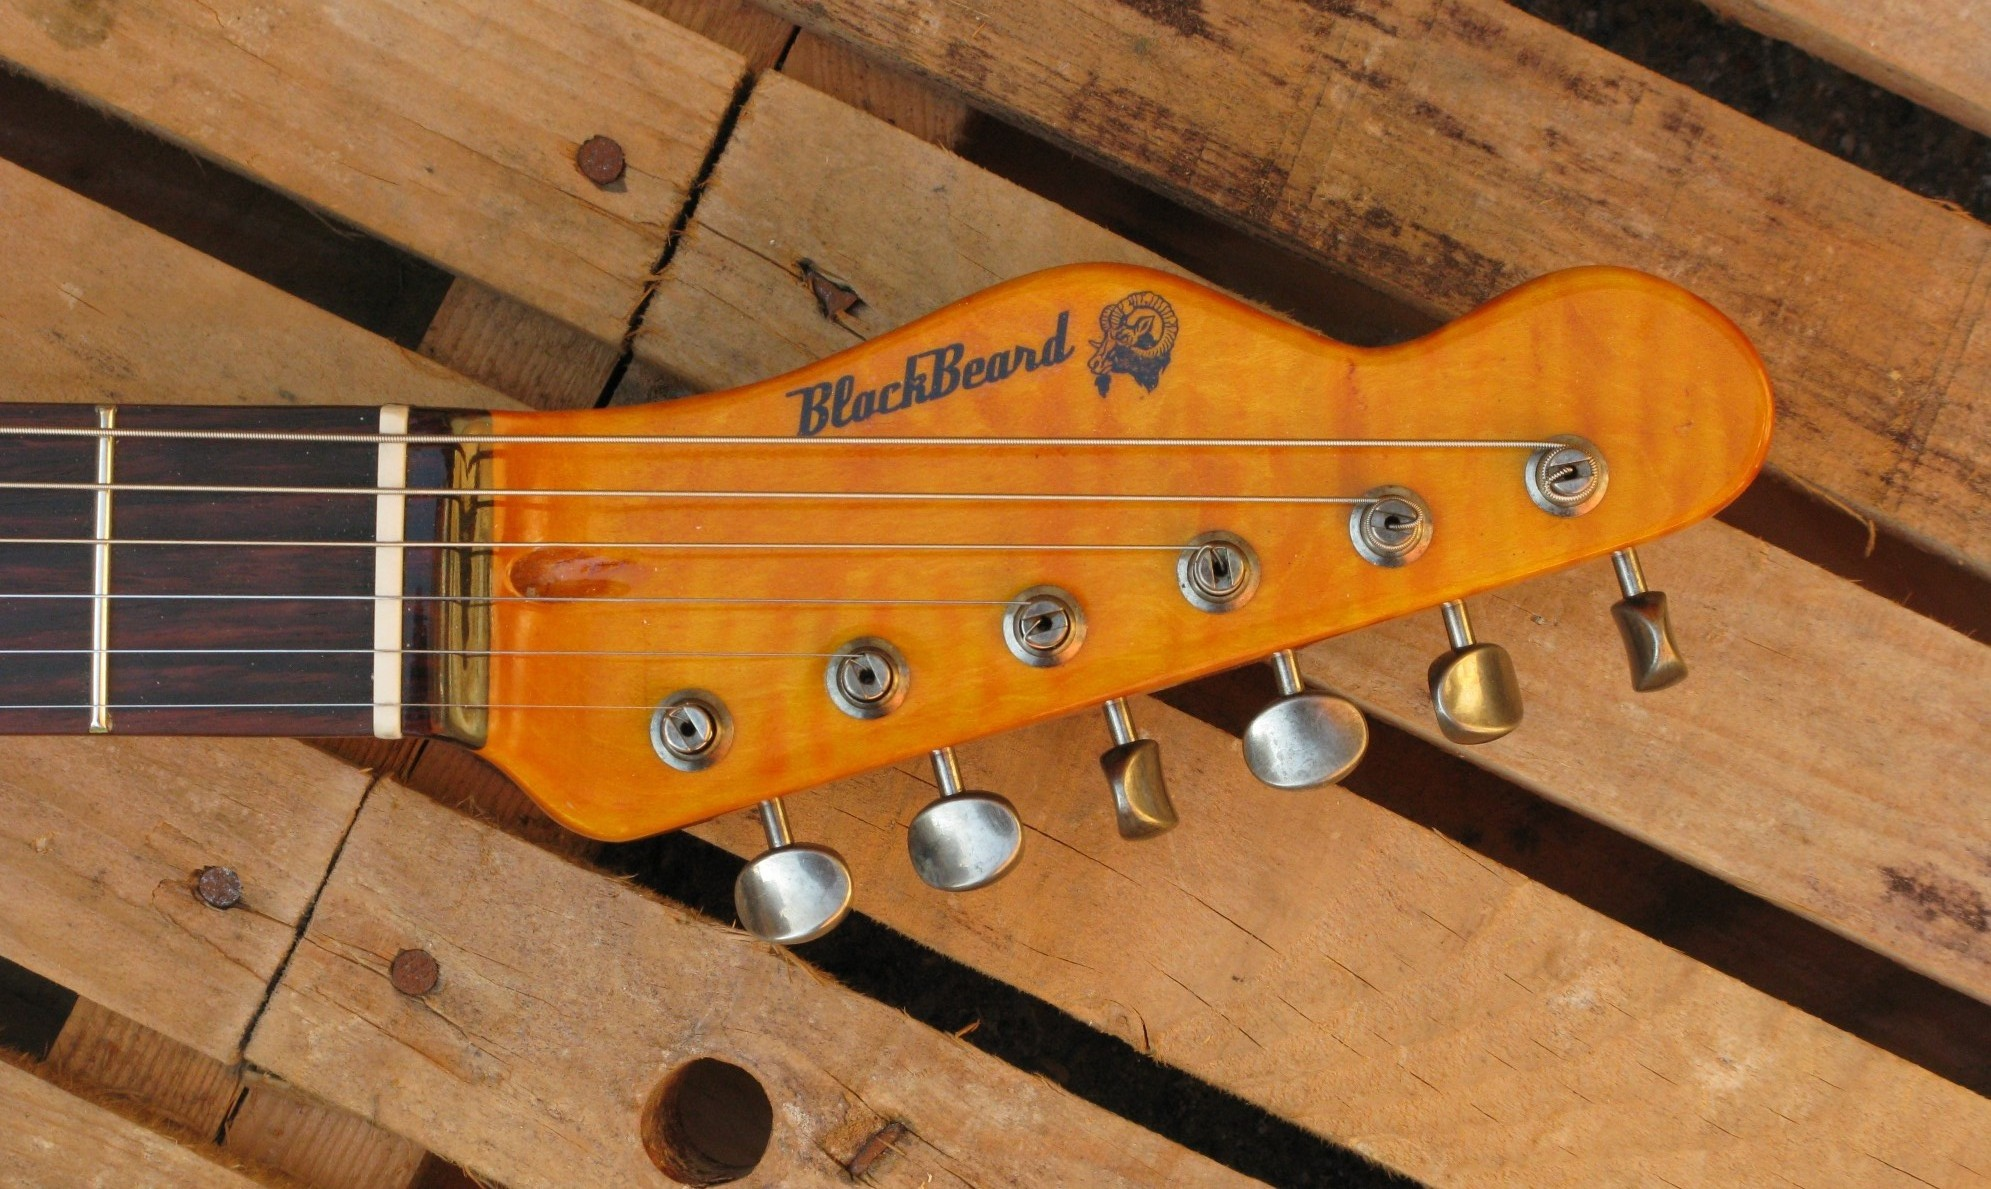 Paletta di una Telecaster Thinline in yellow pine roasted